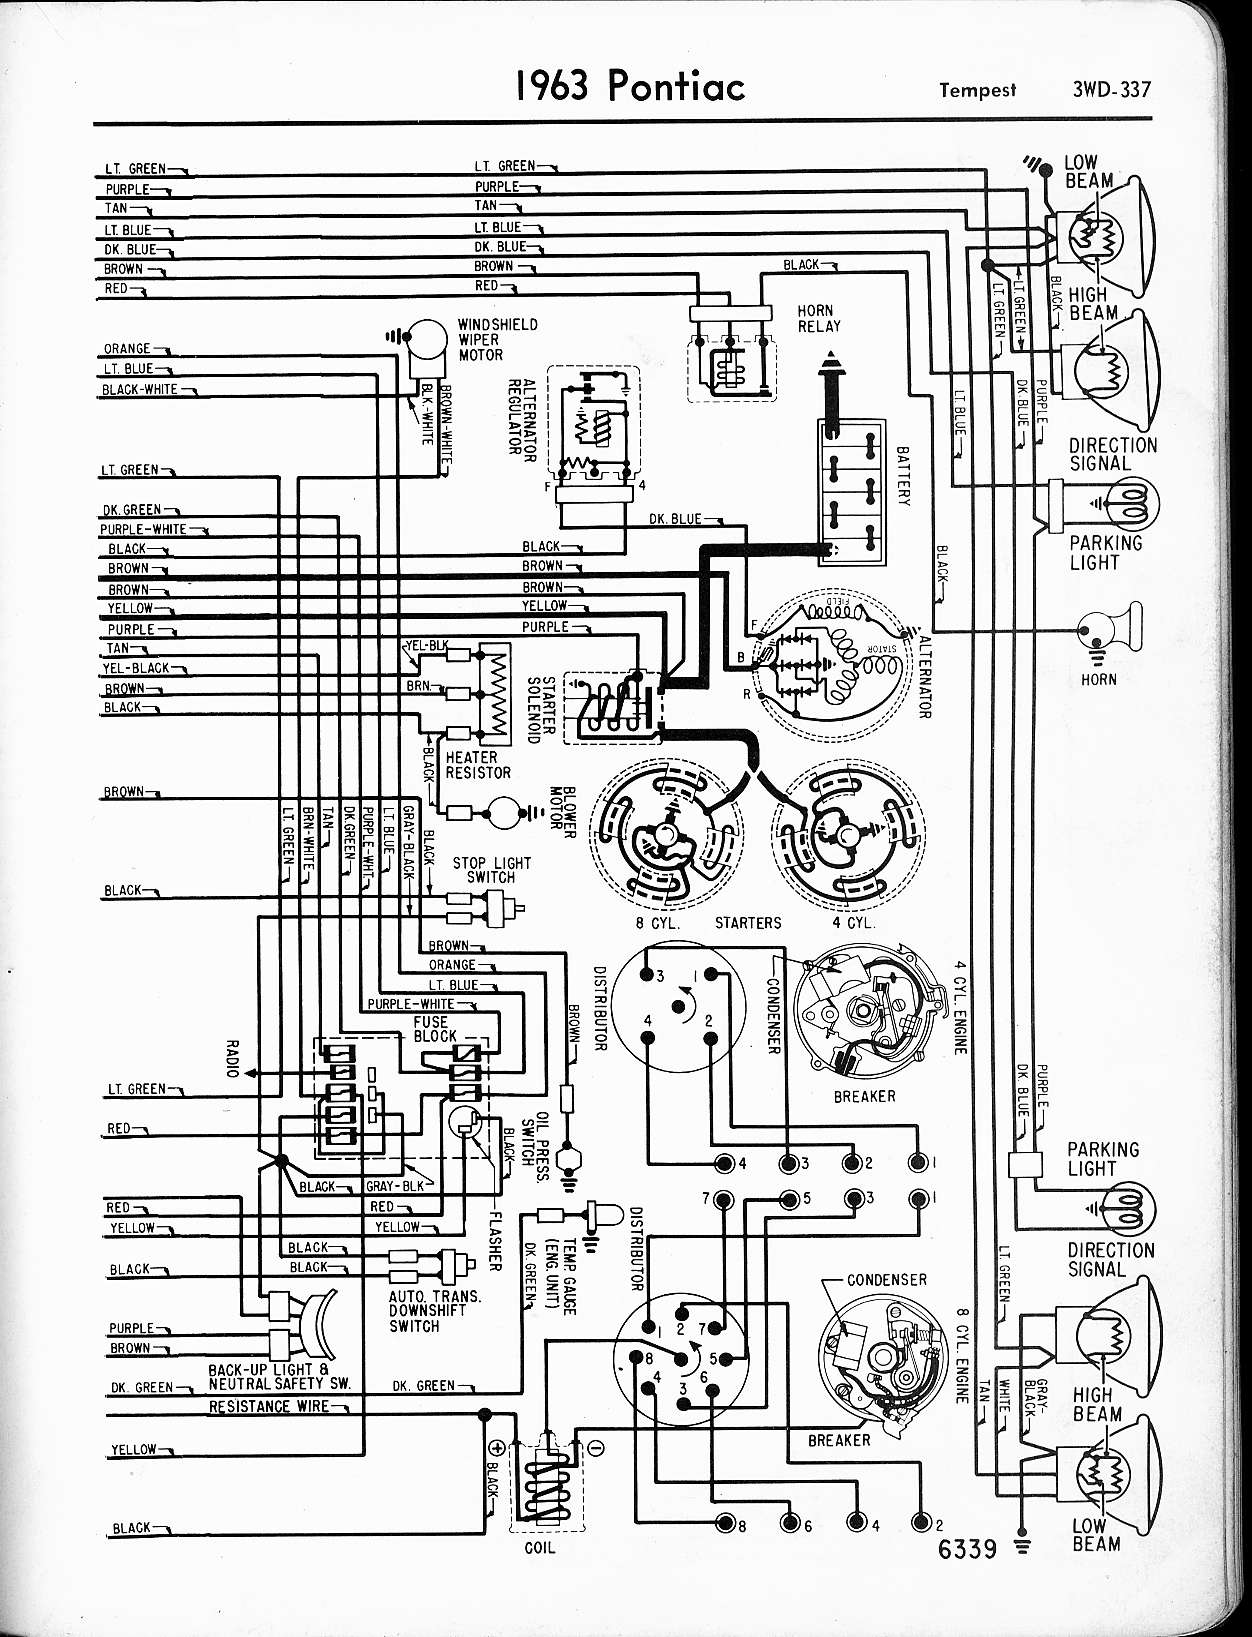 1968 pontiac lemans wiring diagram pontiac wiring diagrams 65 gto wiring diagram schematic 1965 gto heater wiring diagram